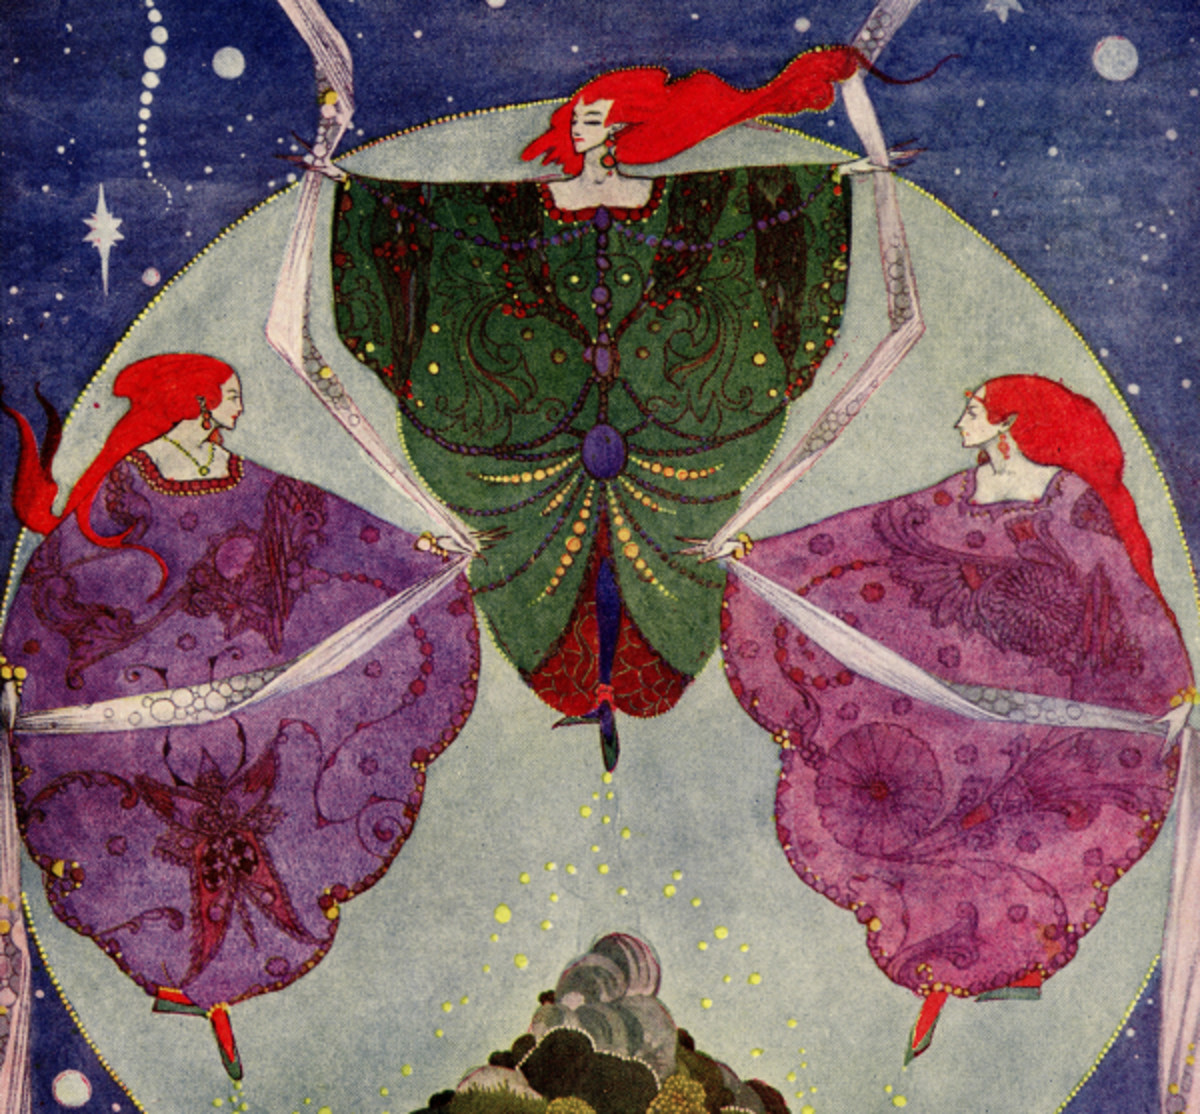 "Here we show a portion of 'They danced with shawls that were woven of mist and moonshine' - it is from Harry Clarke's suite published in ""Fairy Tales by Hans Christian Anderson"" (1916)."